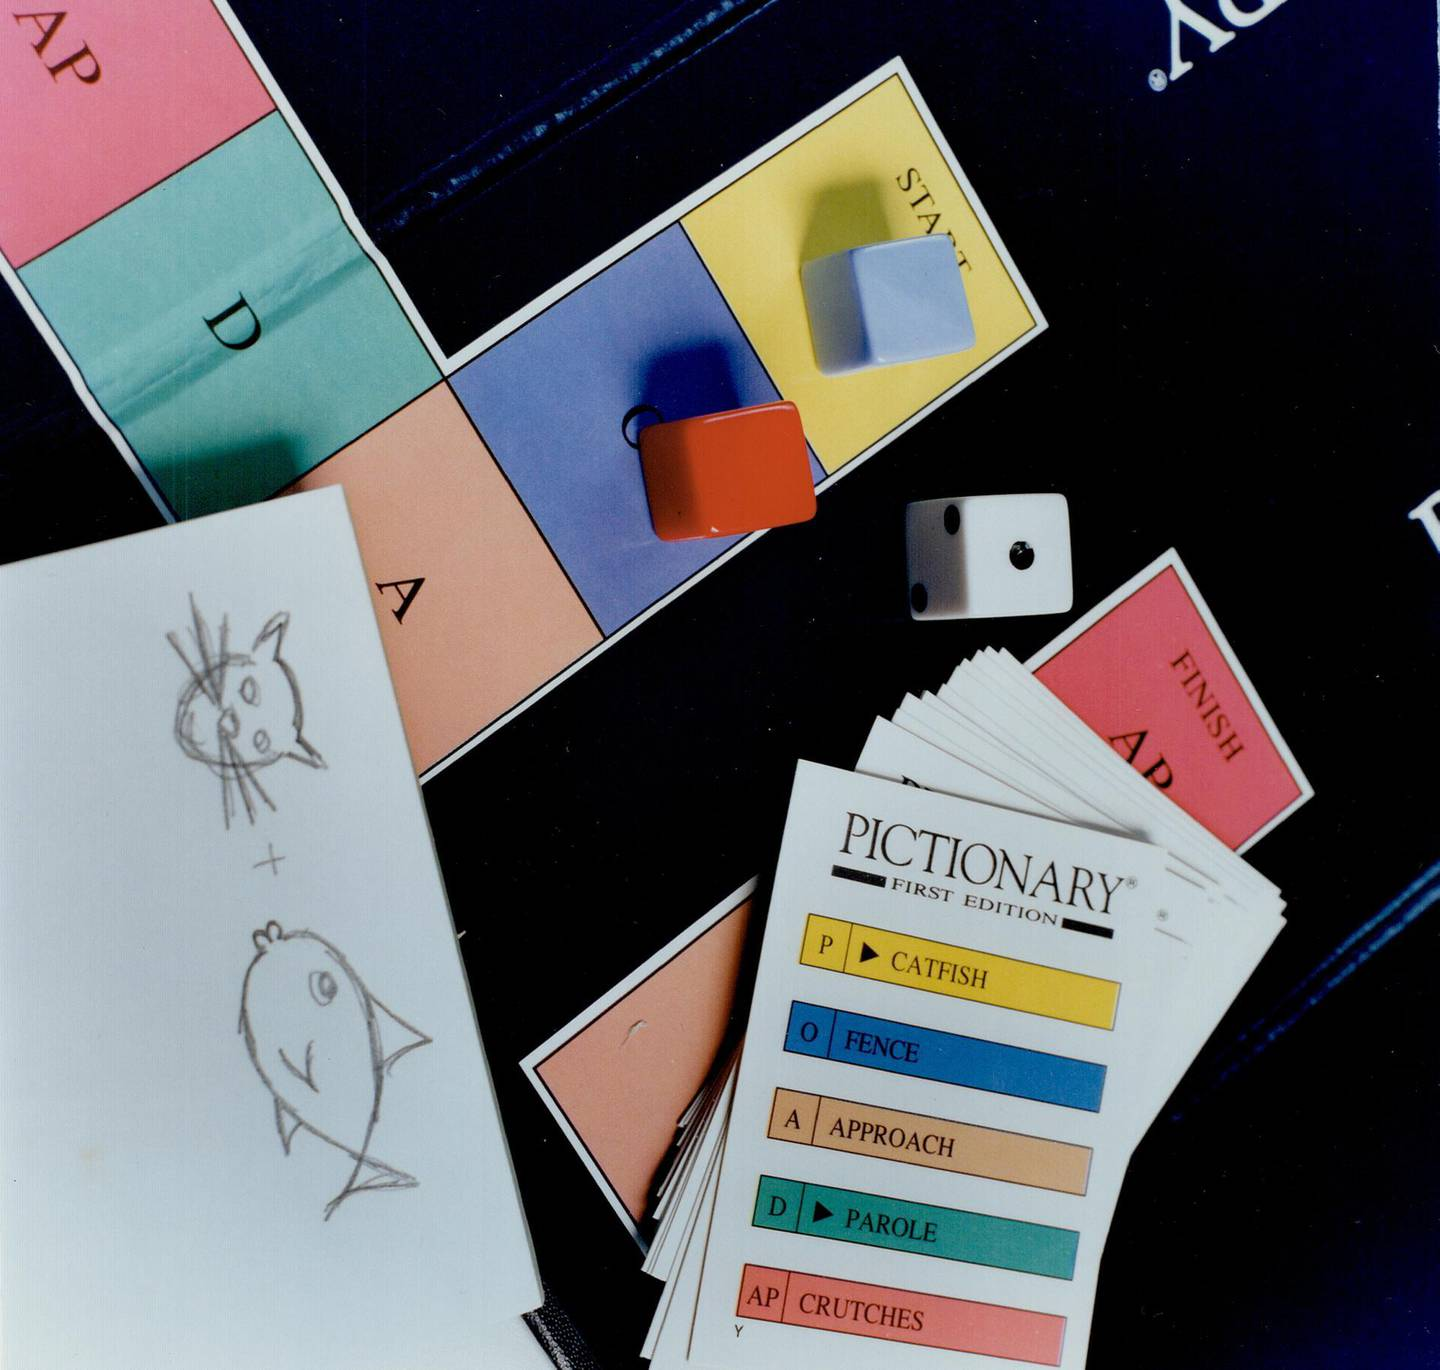 CANADA - FEBRUARY 12: Pictionary; a team game that involves sketched clues; should reach sales of one million this year. (Photo by Keith Beaty/Toronto Star via Getty Images)